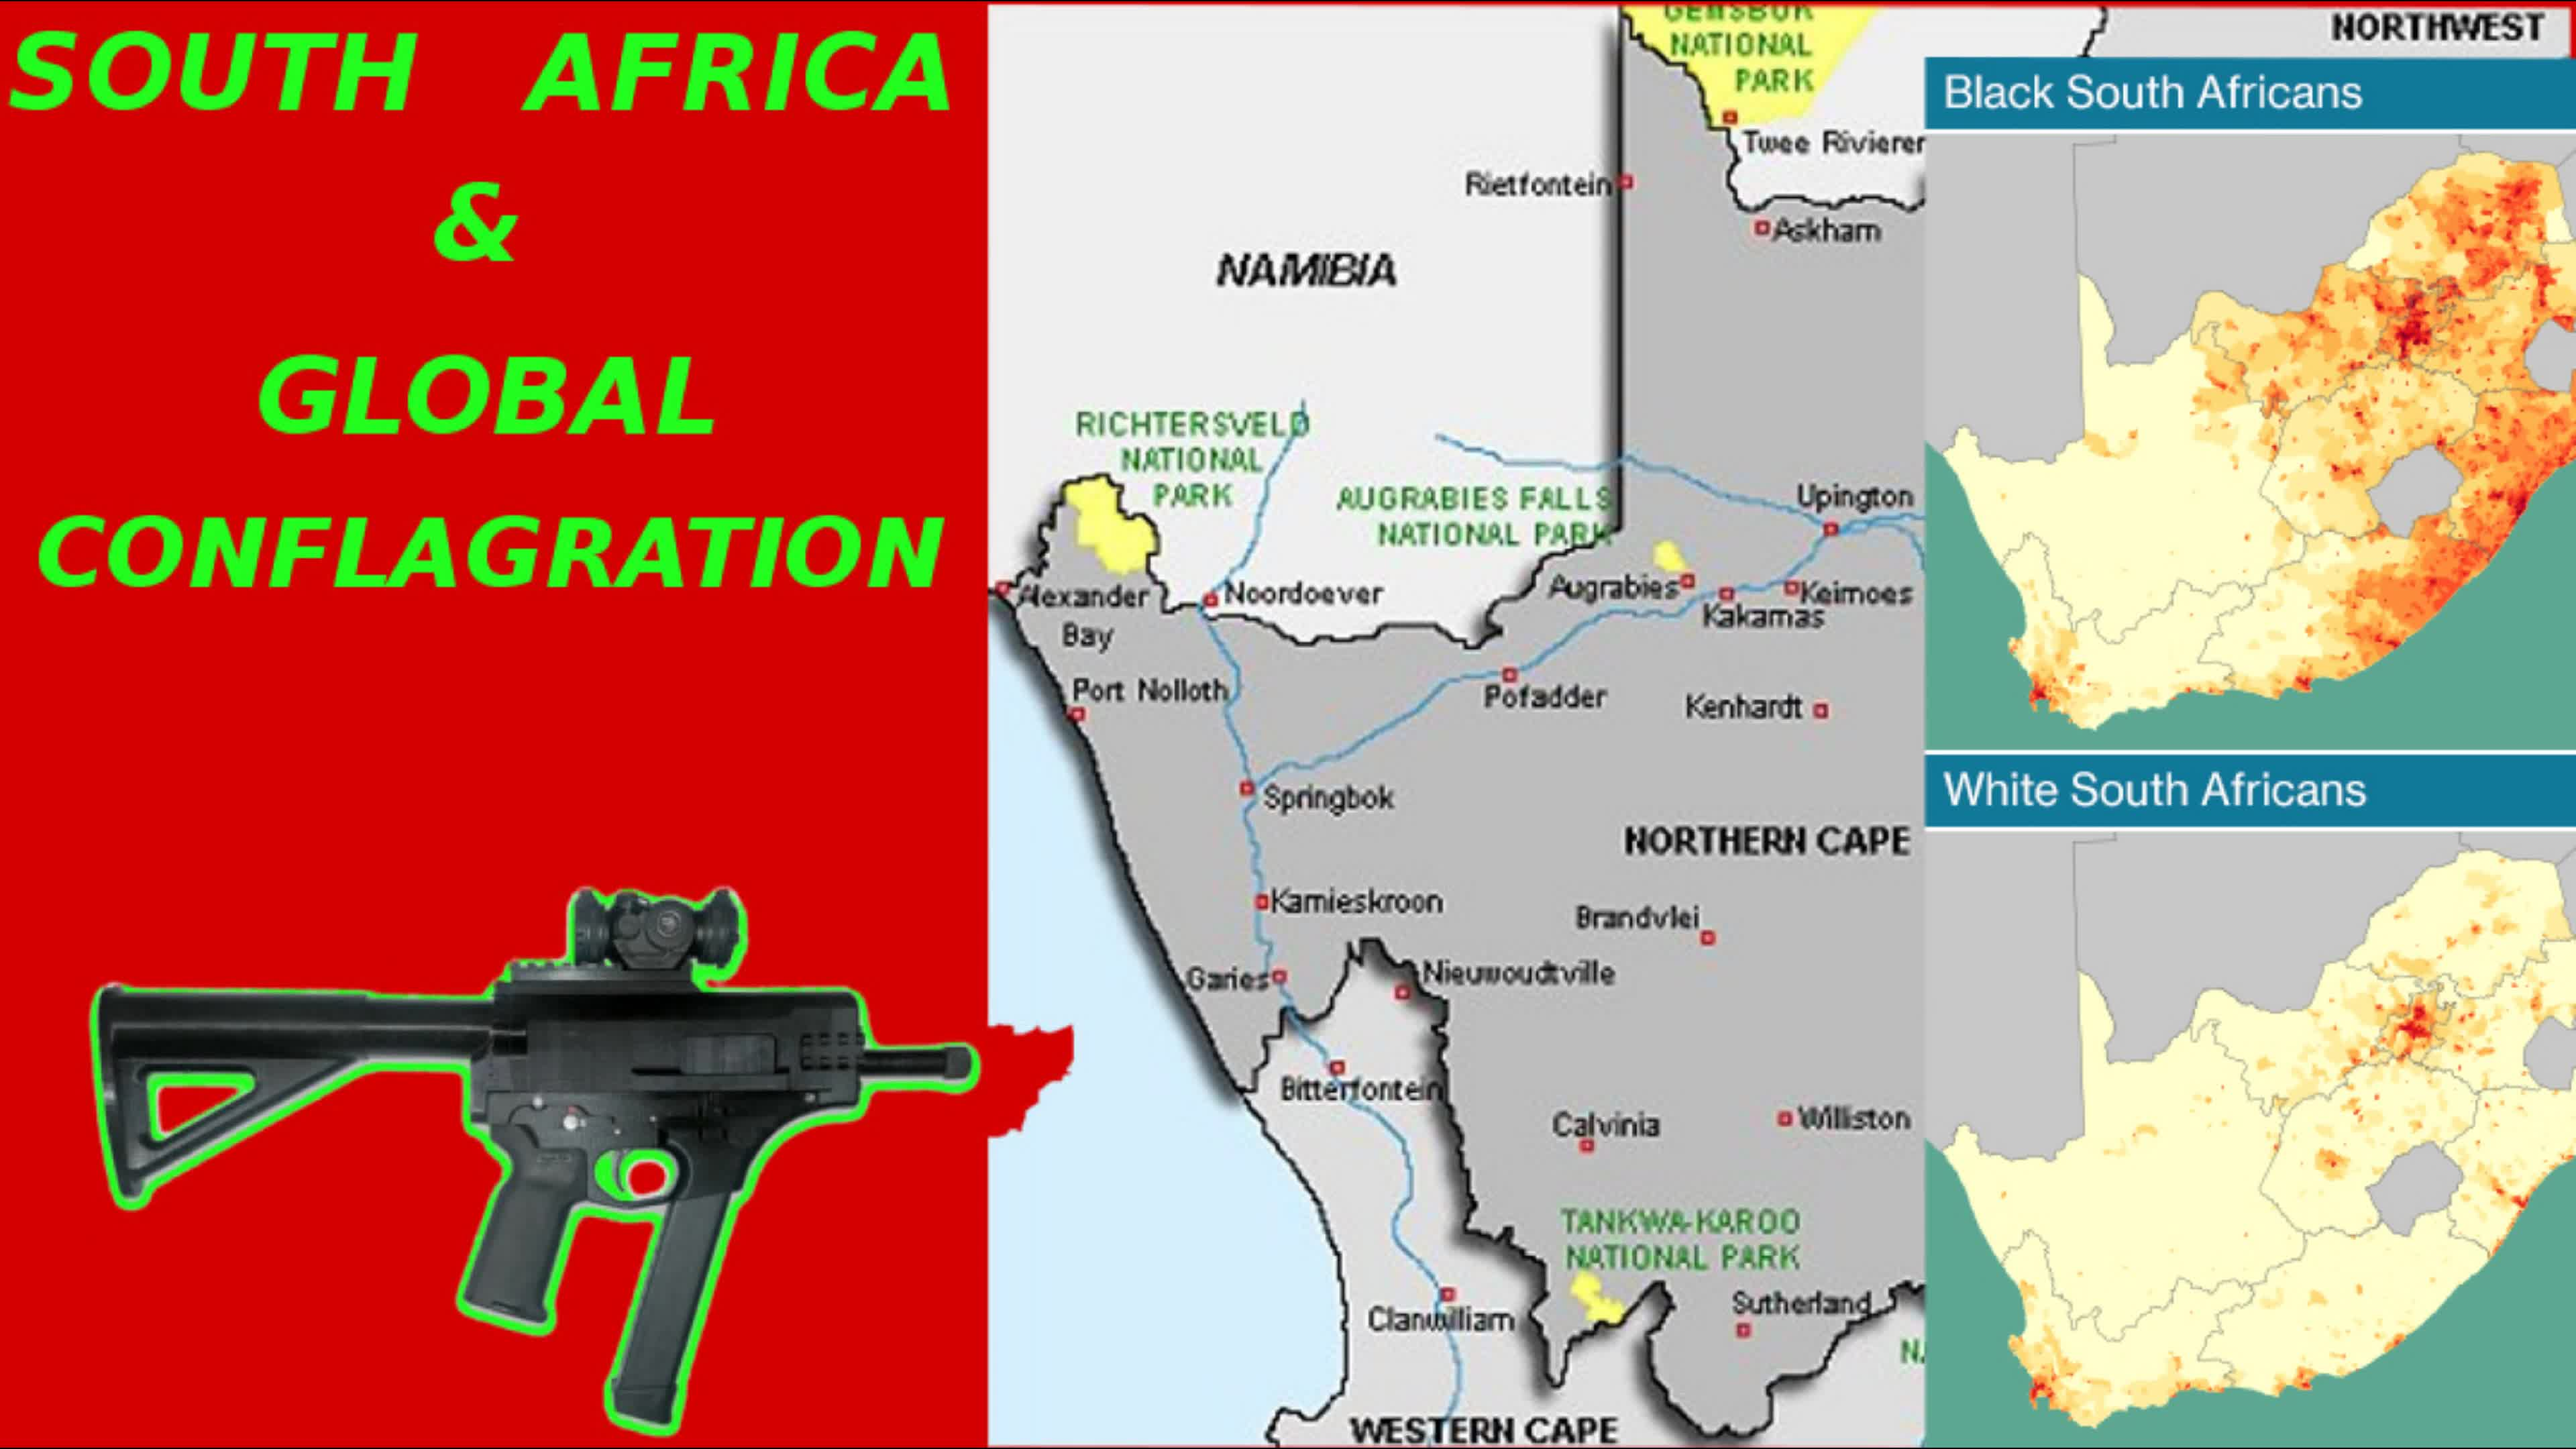 SOUTH AFRICA AND GLOBAL CONFLAGRATION